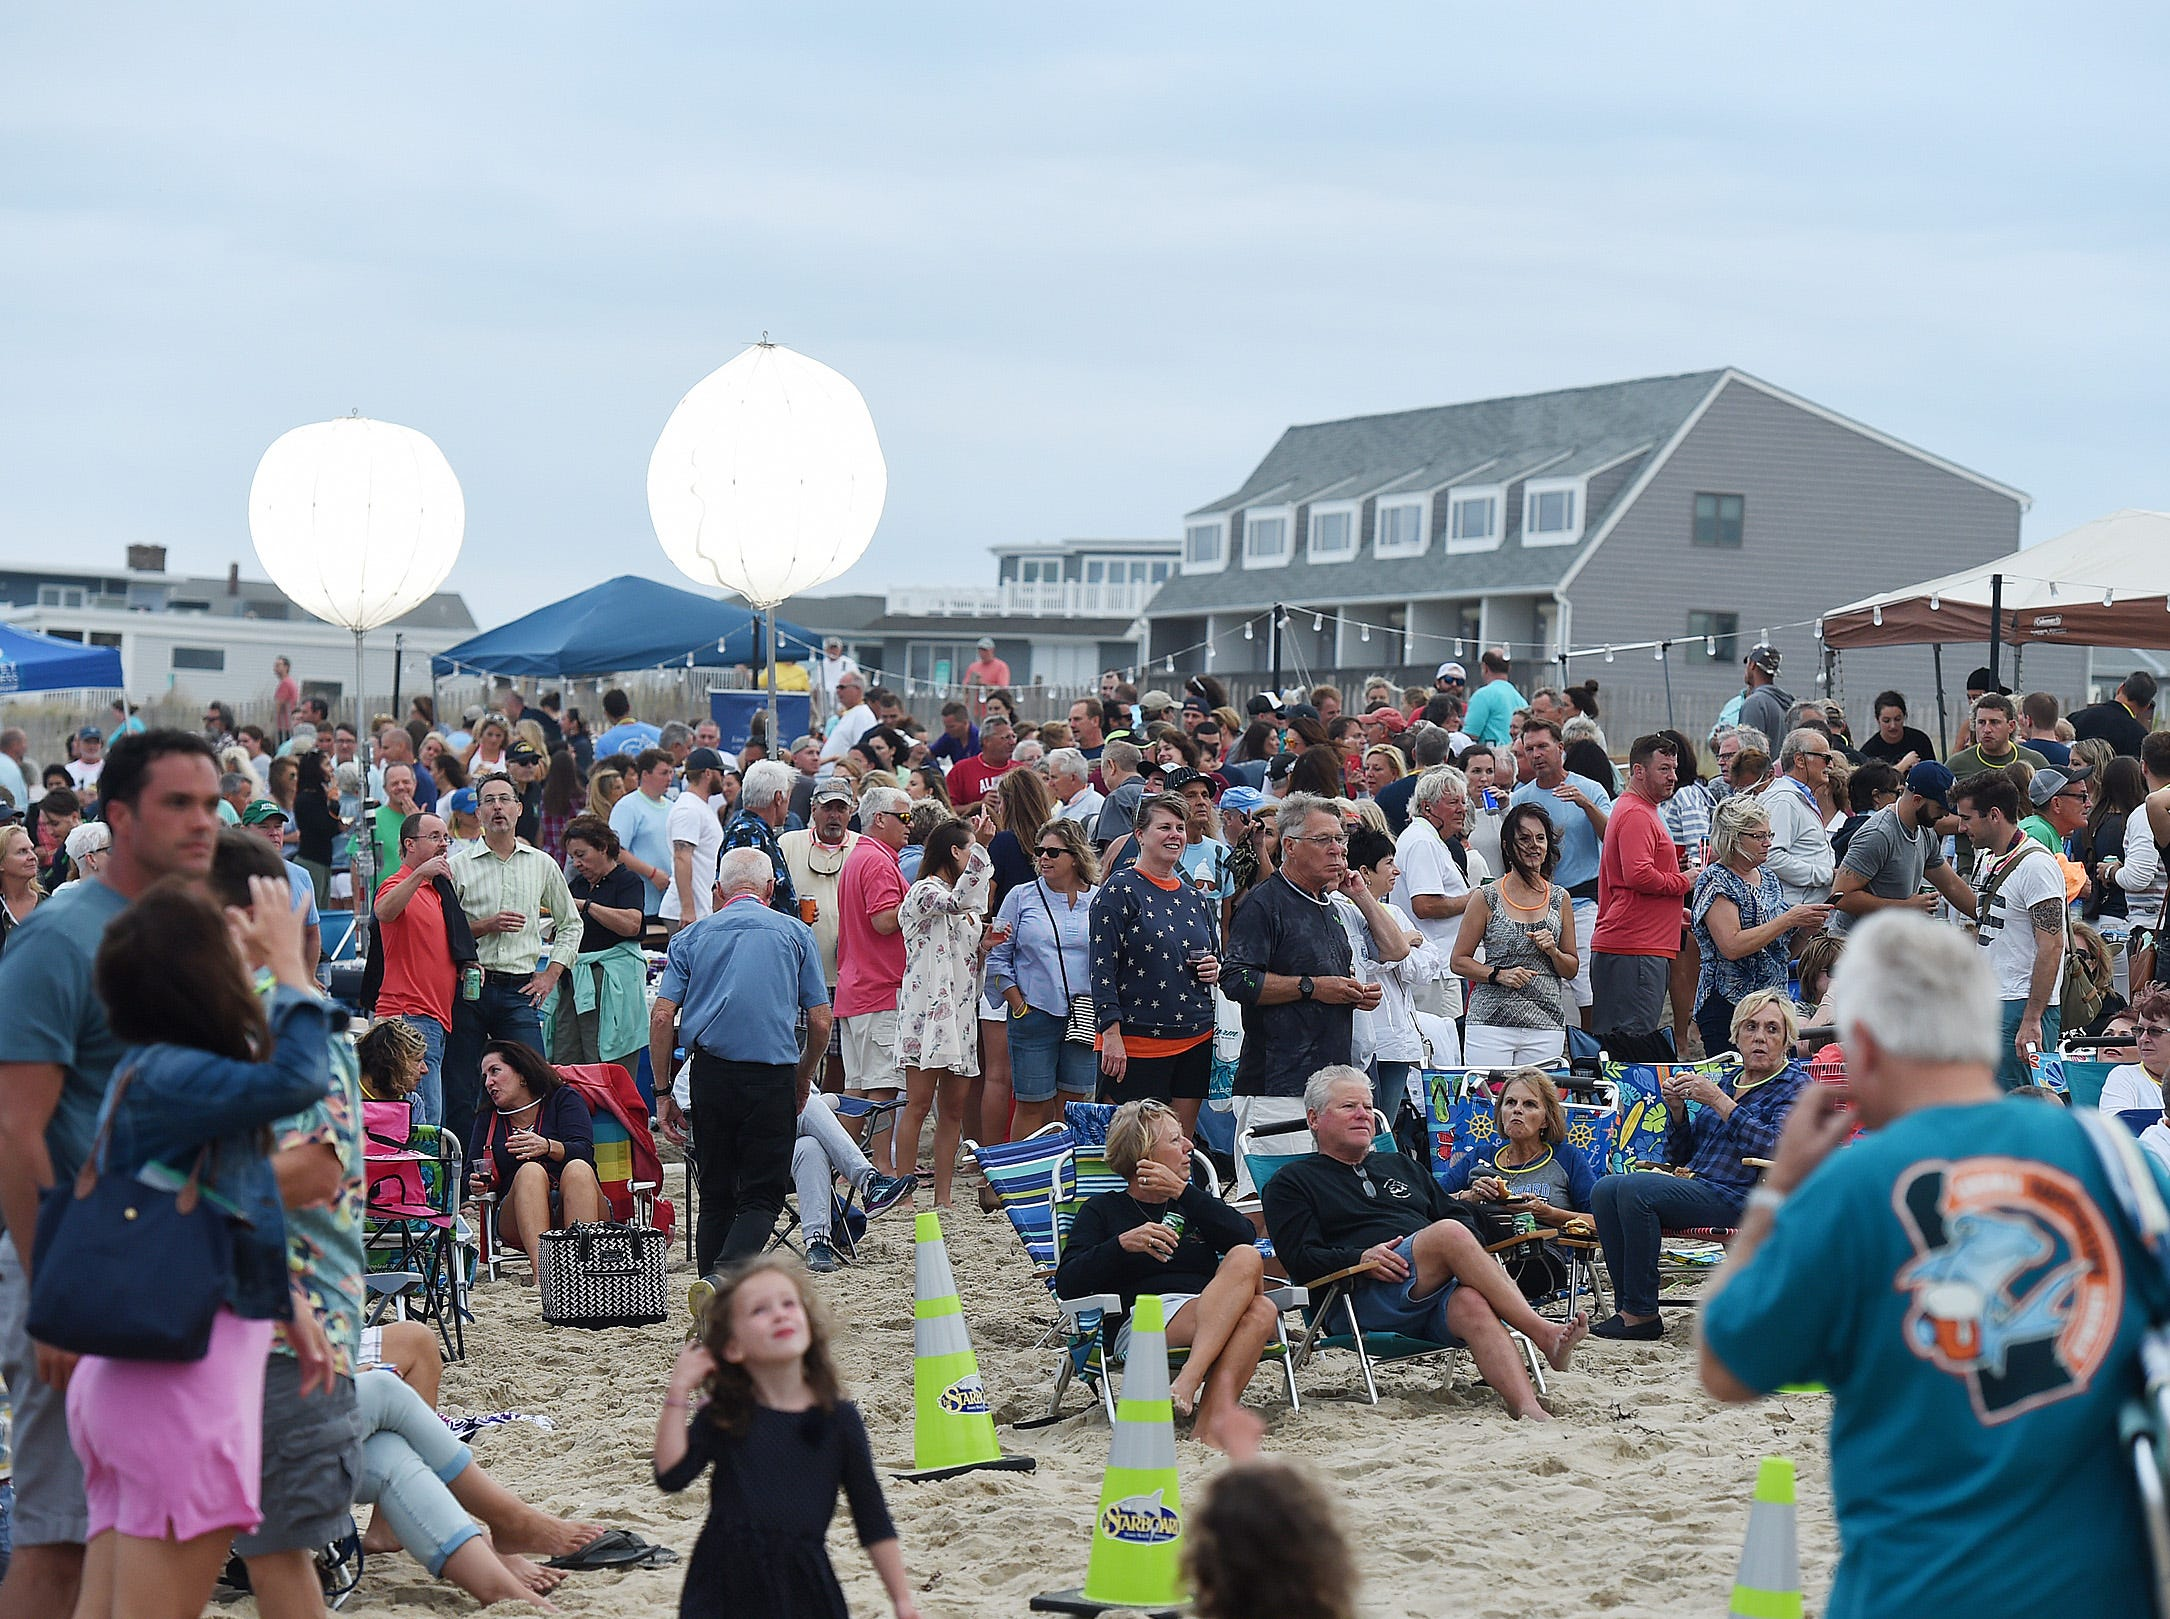 The Dewey Business Partnership held their Annual End of the Summer Season Beach Party on the beach at New Orlean's Street on Saturday evening Sept. 24 with over 800 people coming to say goodbye to summer and party and listen the Joe Bachman and his Band perform. Food from several Dewey Beach Restaurants was available along with games for the kids and a large bonfire. A full moon finished the night as the tide rolled in.